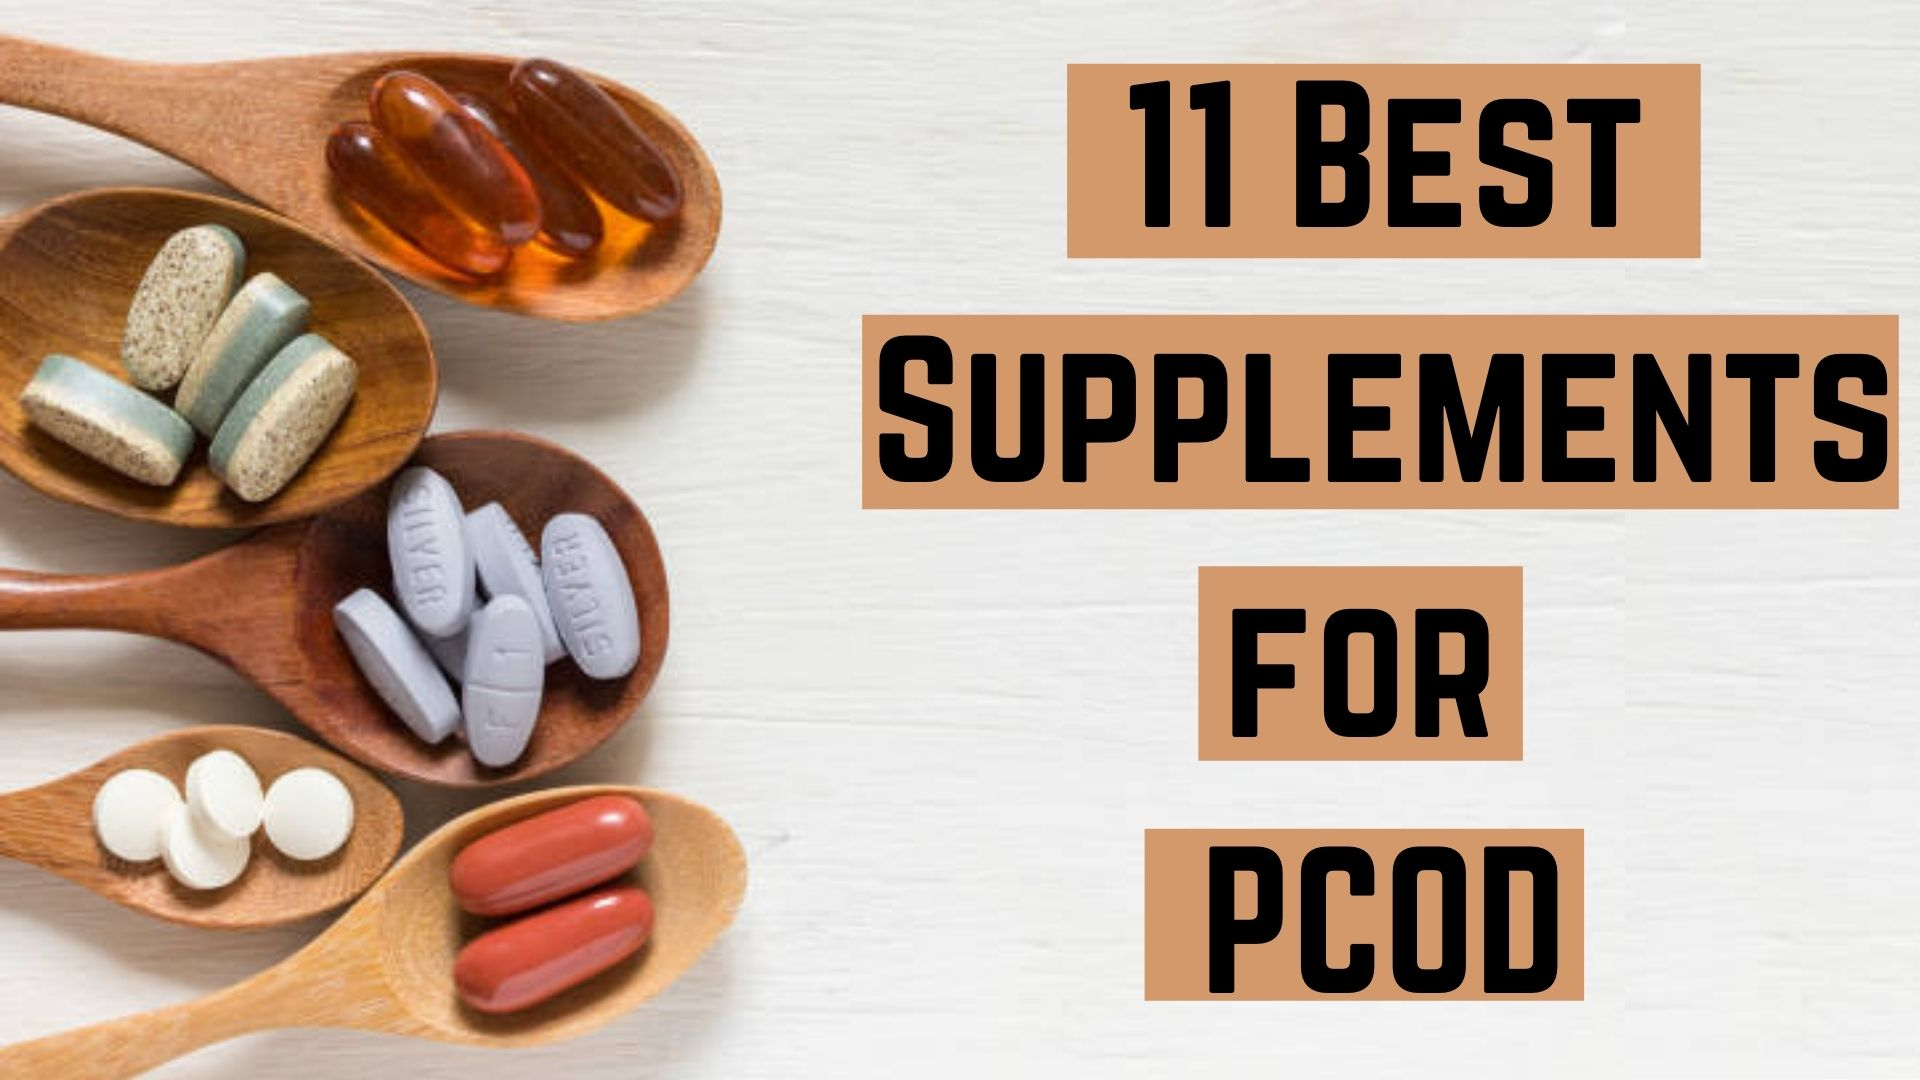 11 best supplements for PCOD